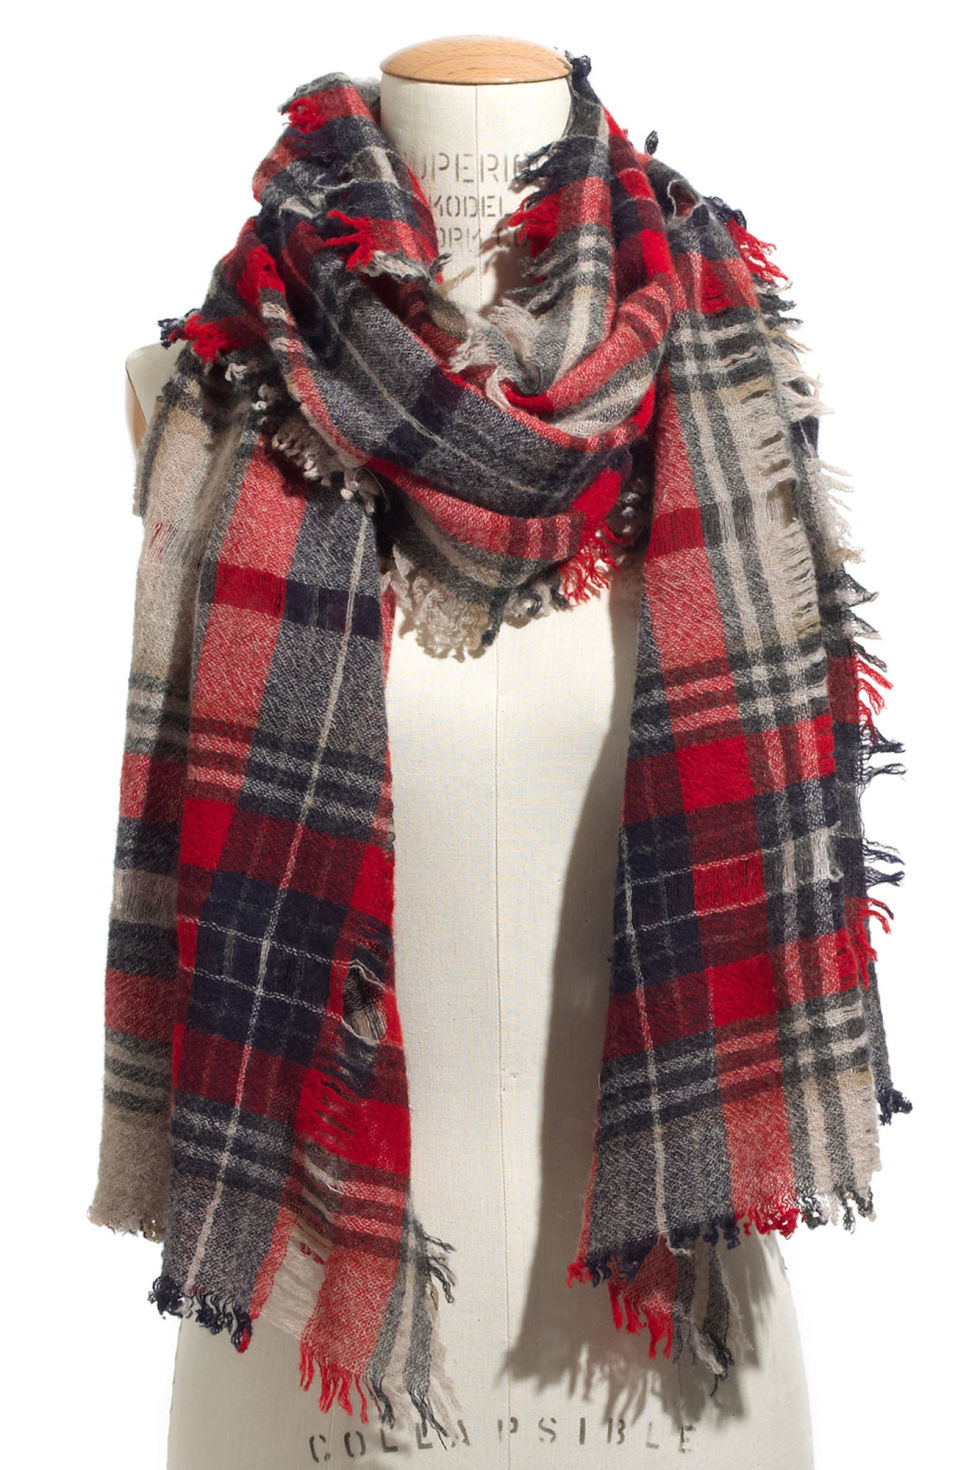 10 Best Plaid Scarves in Winter 2017 - Checkered Plaid and Tartan ...